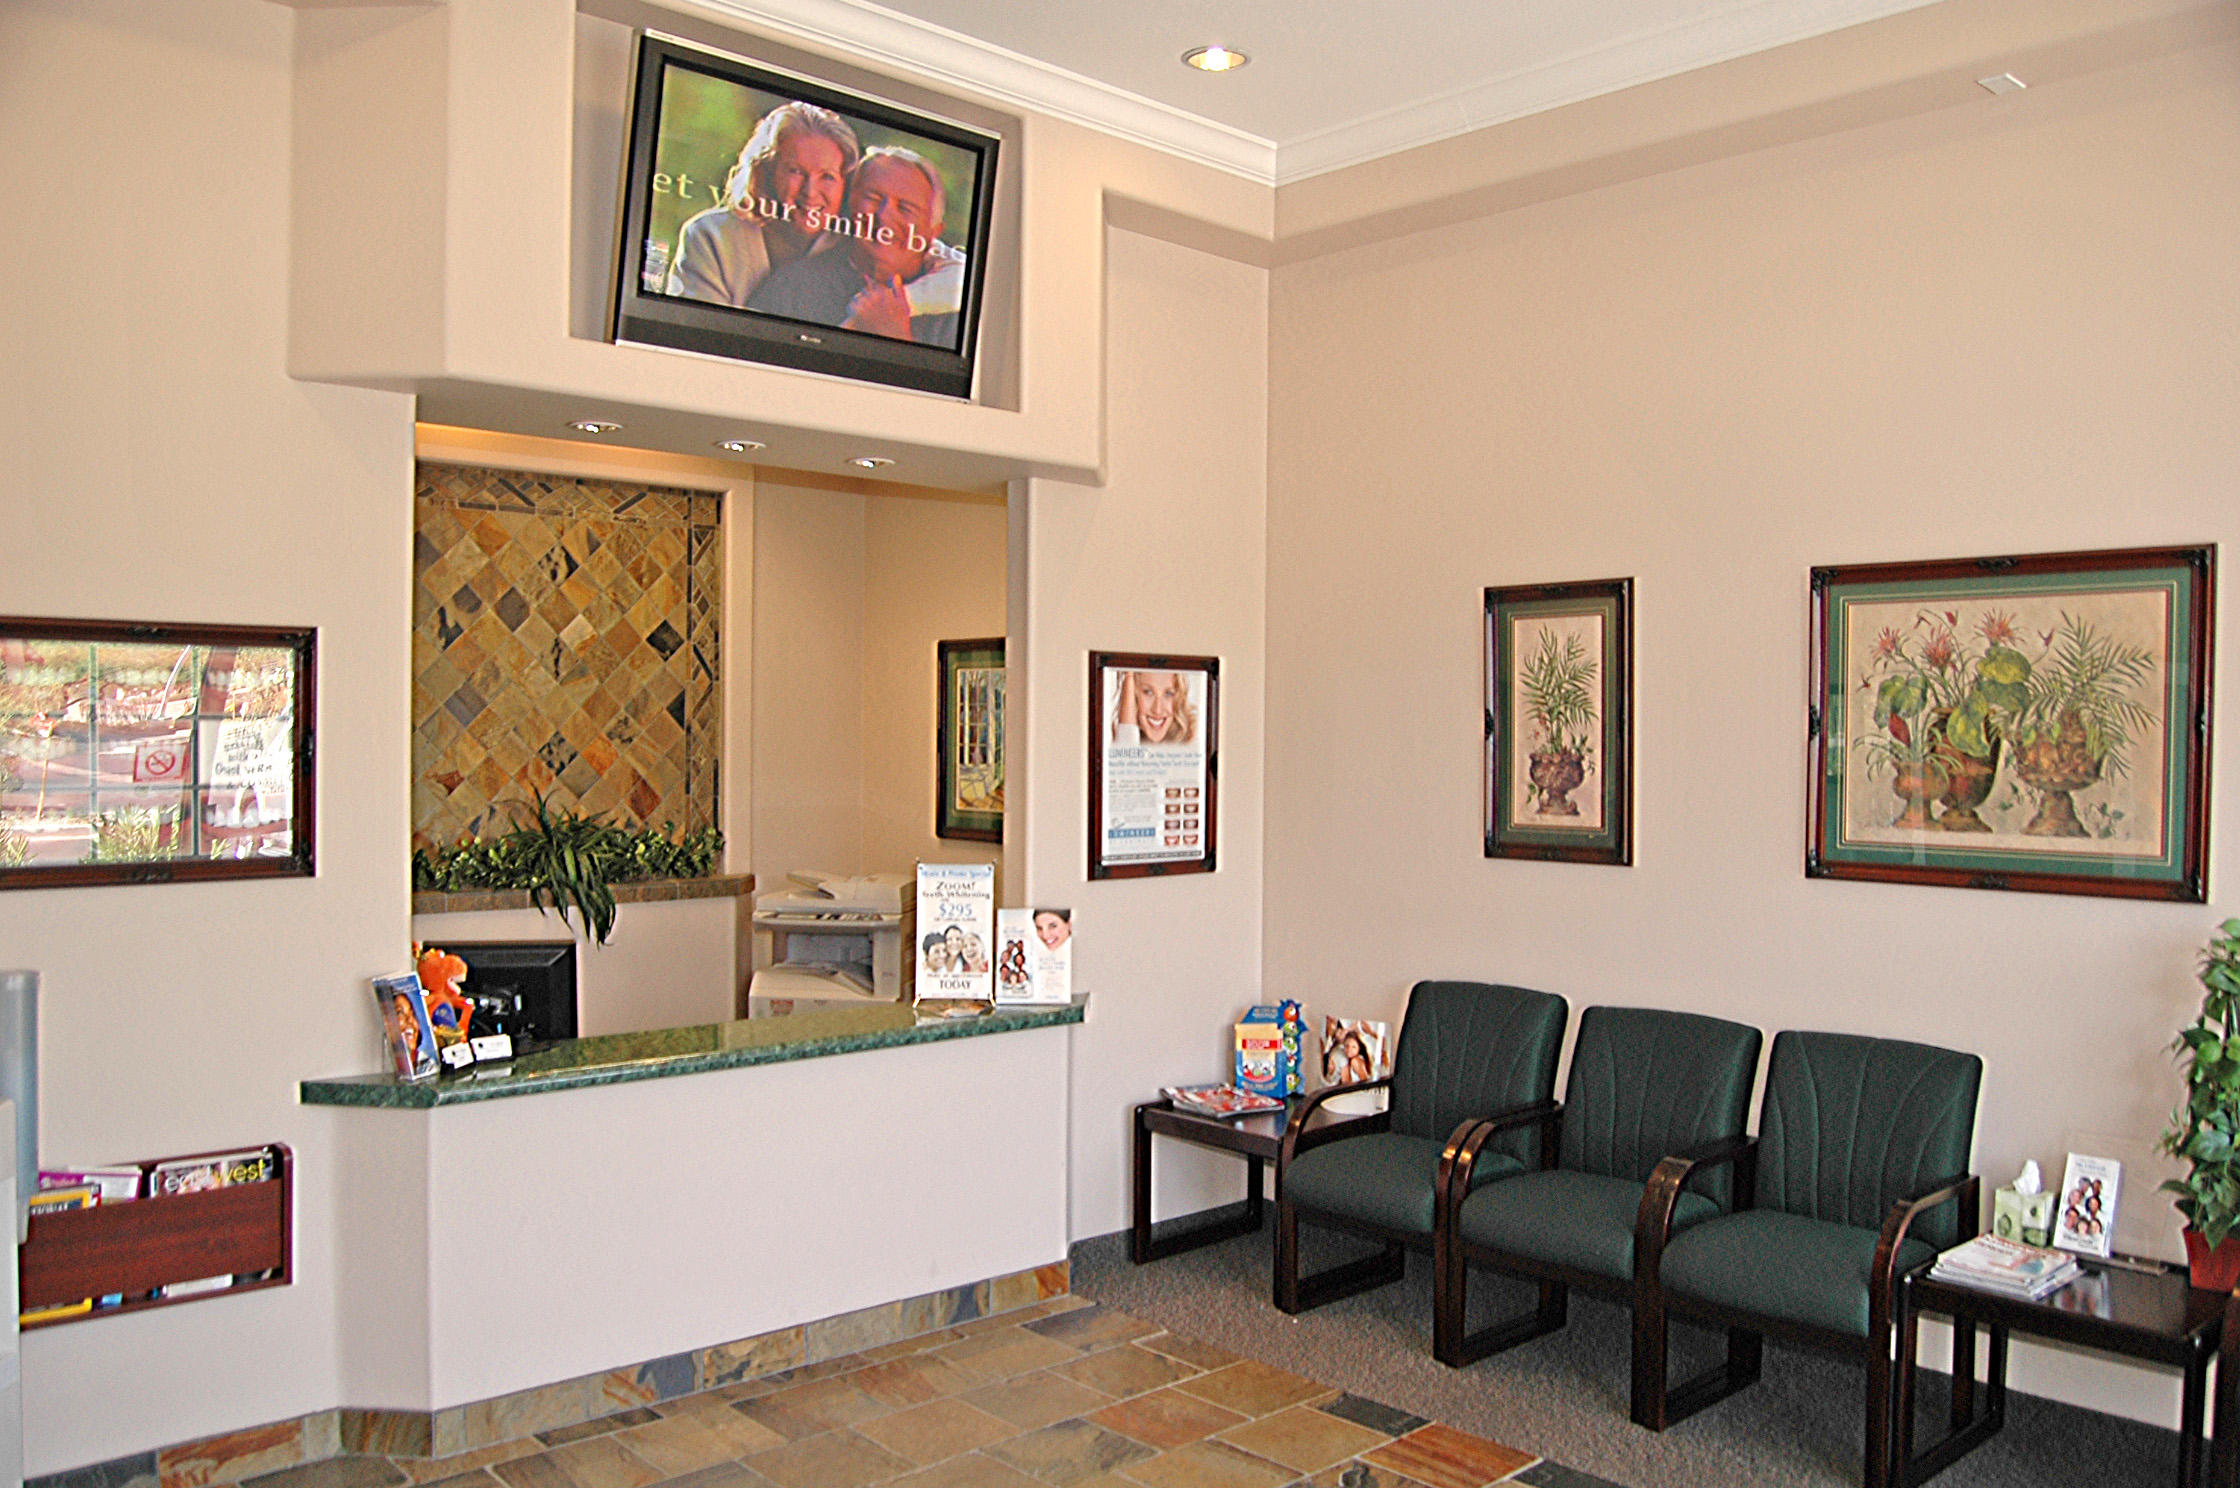 Tatum Smiles Dentistry opened its doors to the Phoenix community in July 2006.